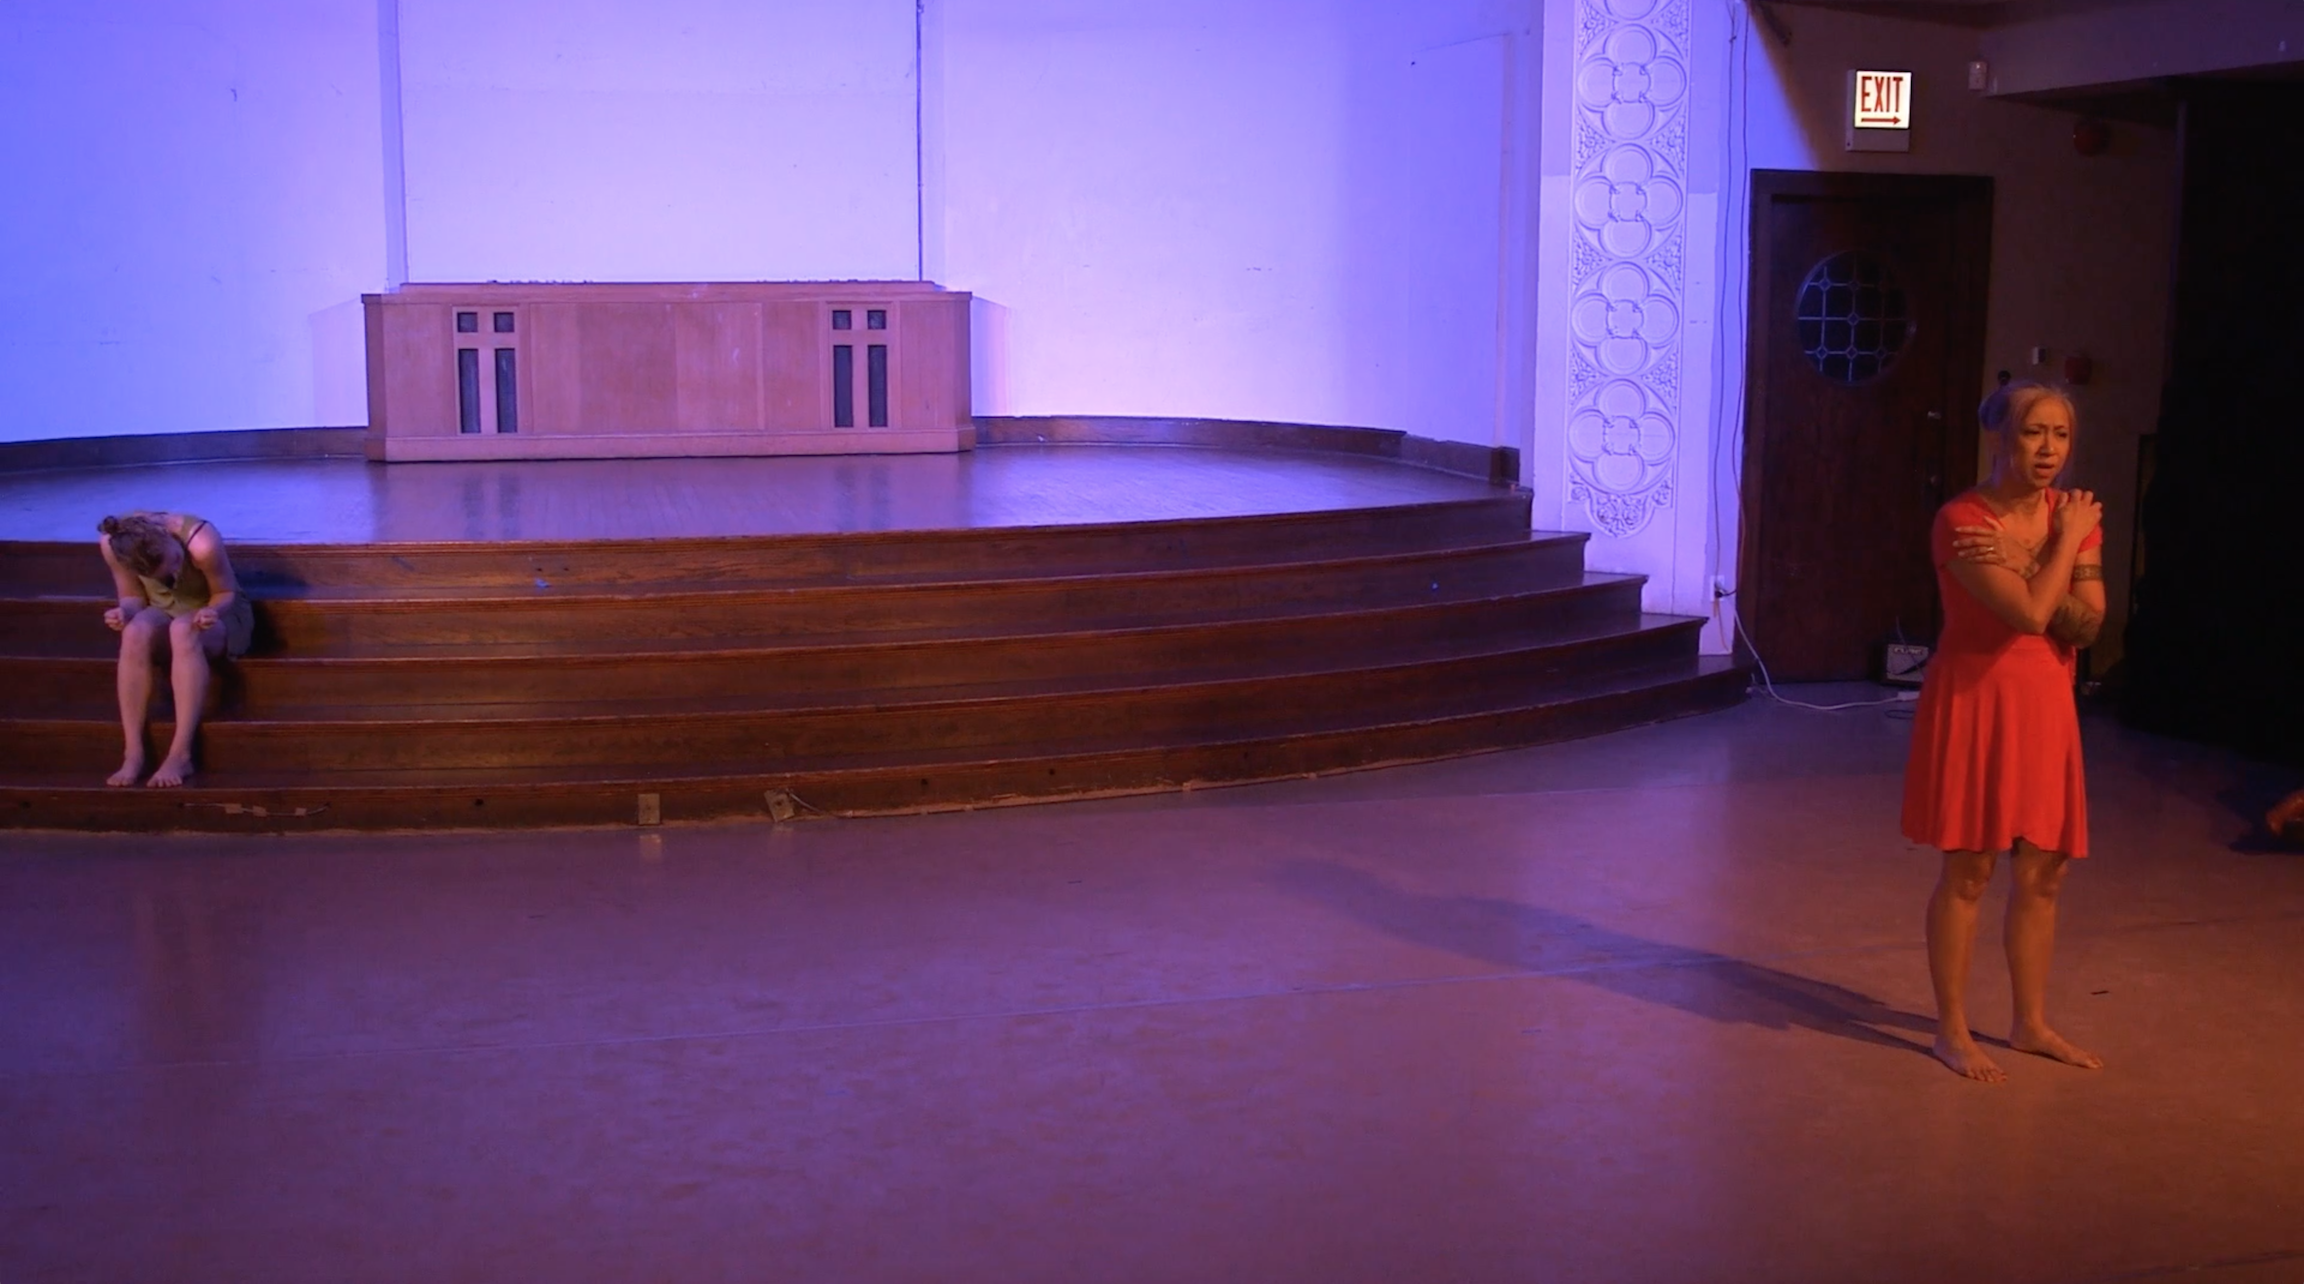 """Image: Maxine Patronik and Lani T. Montreal performing in """"Blood Memory."""" Lani is in the right foreground of the image. She stands near the middle of the floor, speaking, with her forearms crossed and her hands touching her shoulders. In the back left, Maxine sits on a stage step, folding her torso over her quads and clenching her fists. The lighting is dim and cool (blue-purple). Still from a video by John Borowski."""